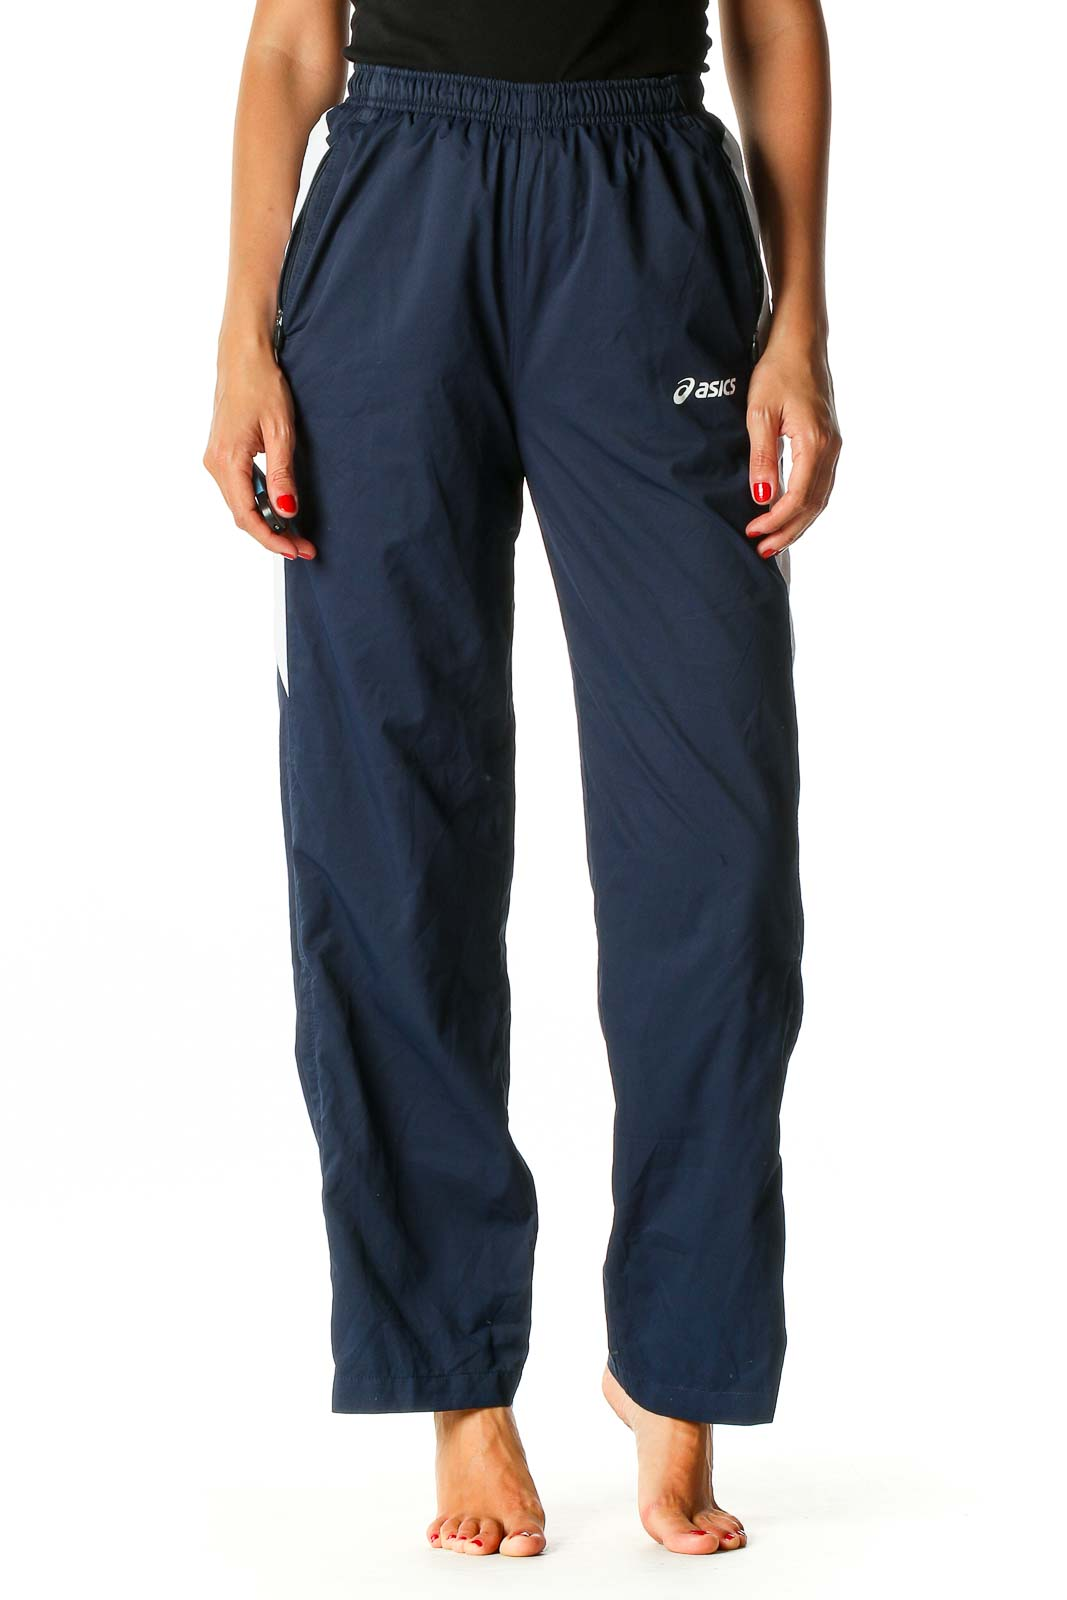 Blue Solid Activewear Sweatpants Front